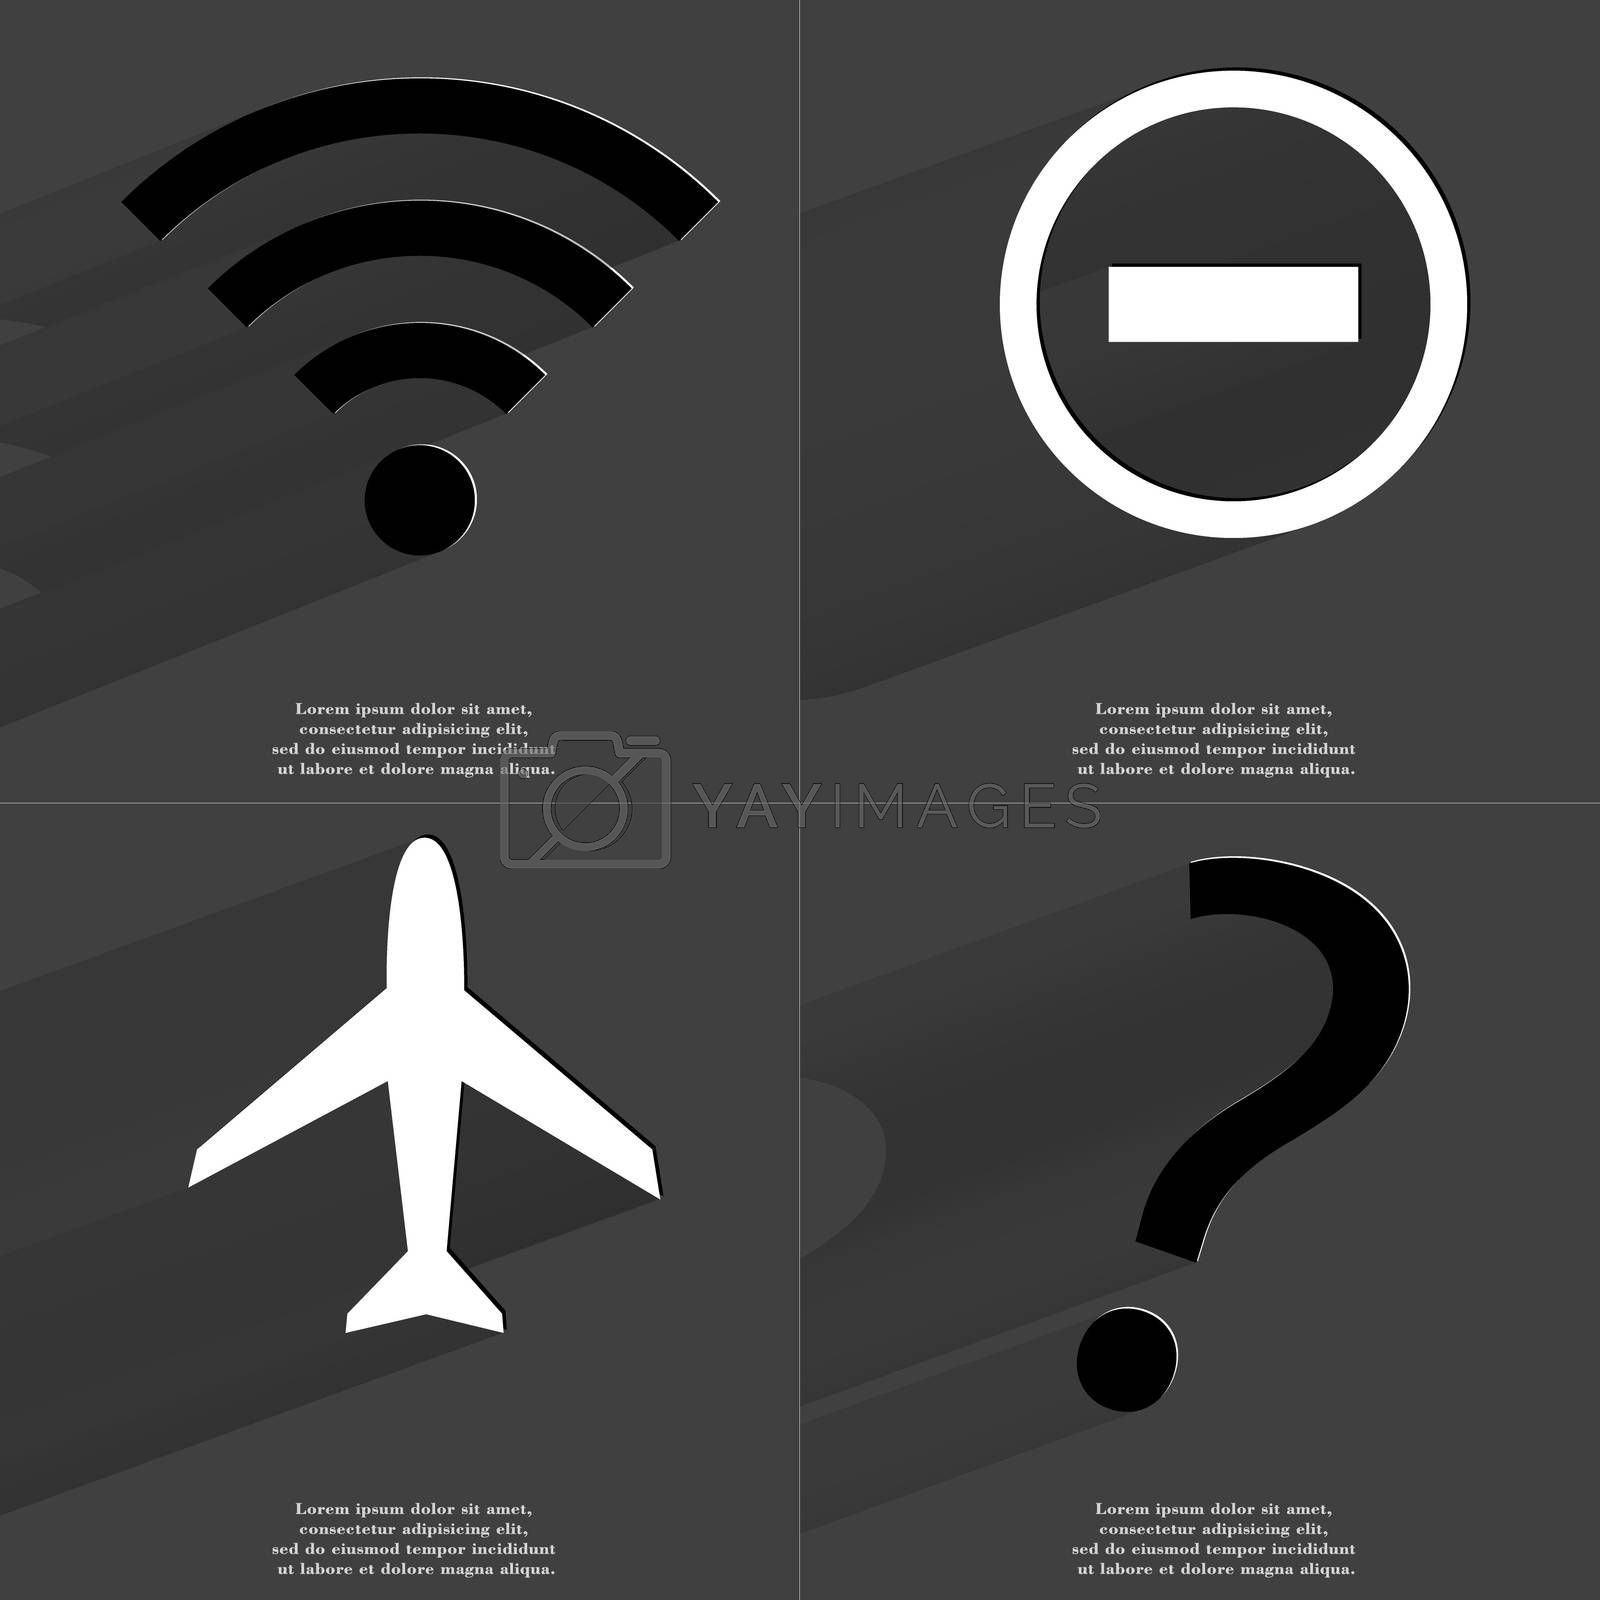 Royalty free image of WLAN icon, Minus sign, Airplane, Question mark. Symbols with long shadow. Flat design by serhii_lohvyniuk